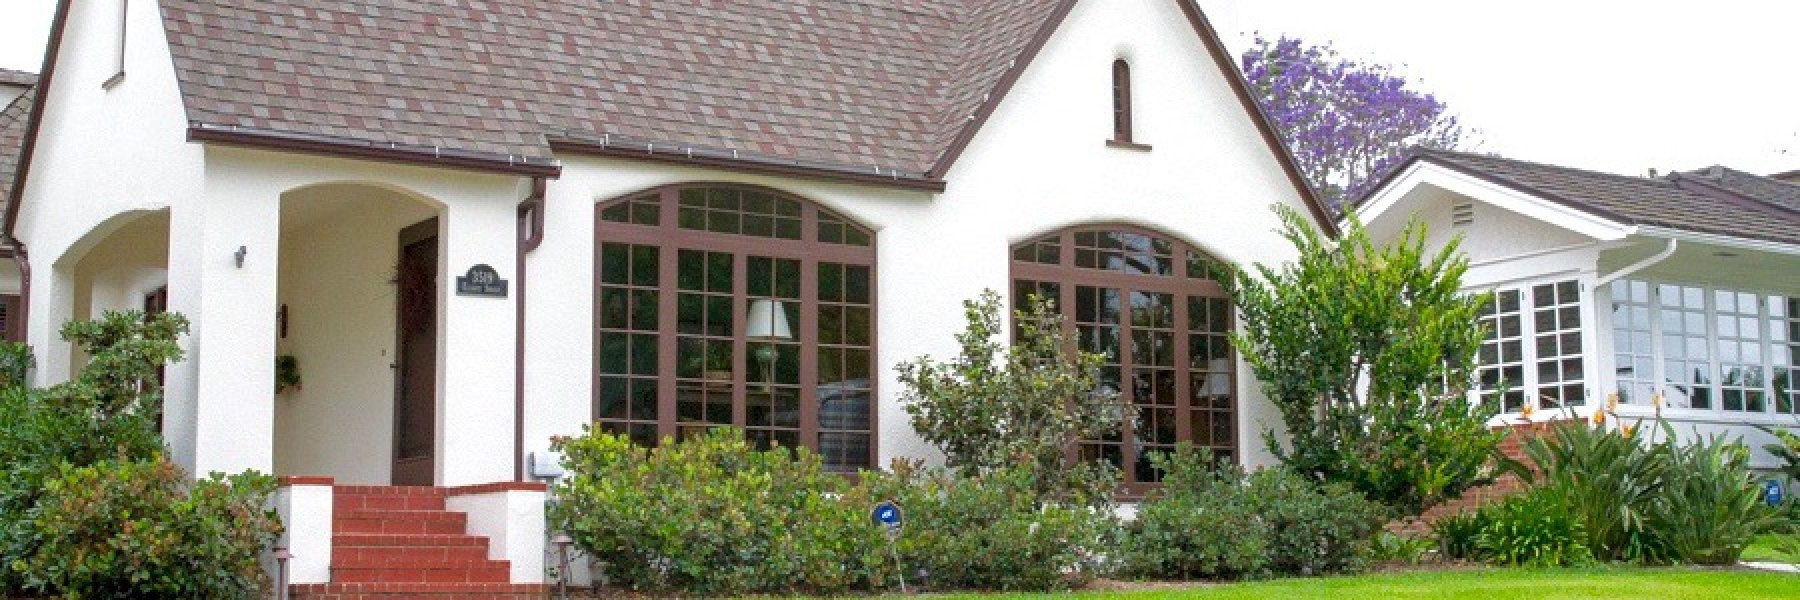 Loma Portal is a community of homes in San Diego California